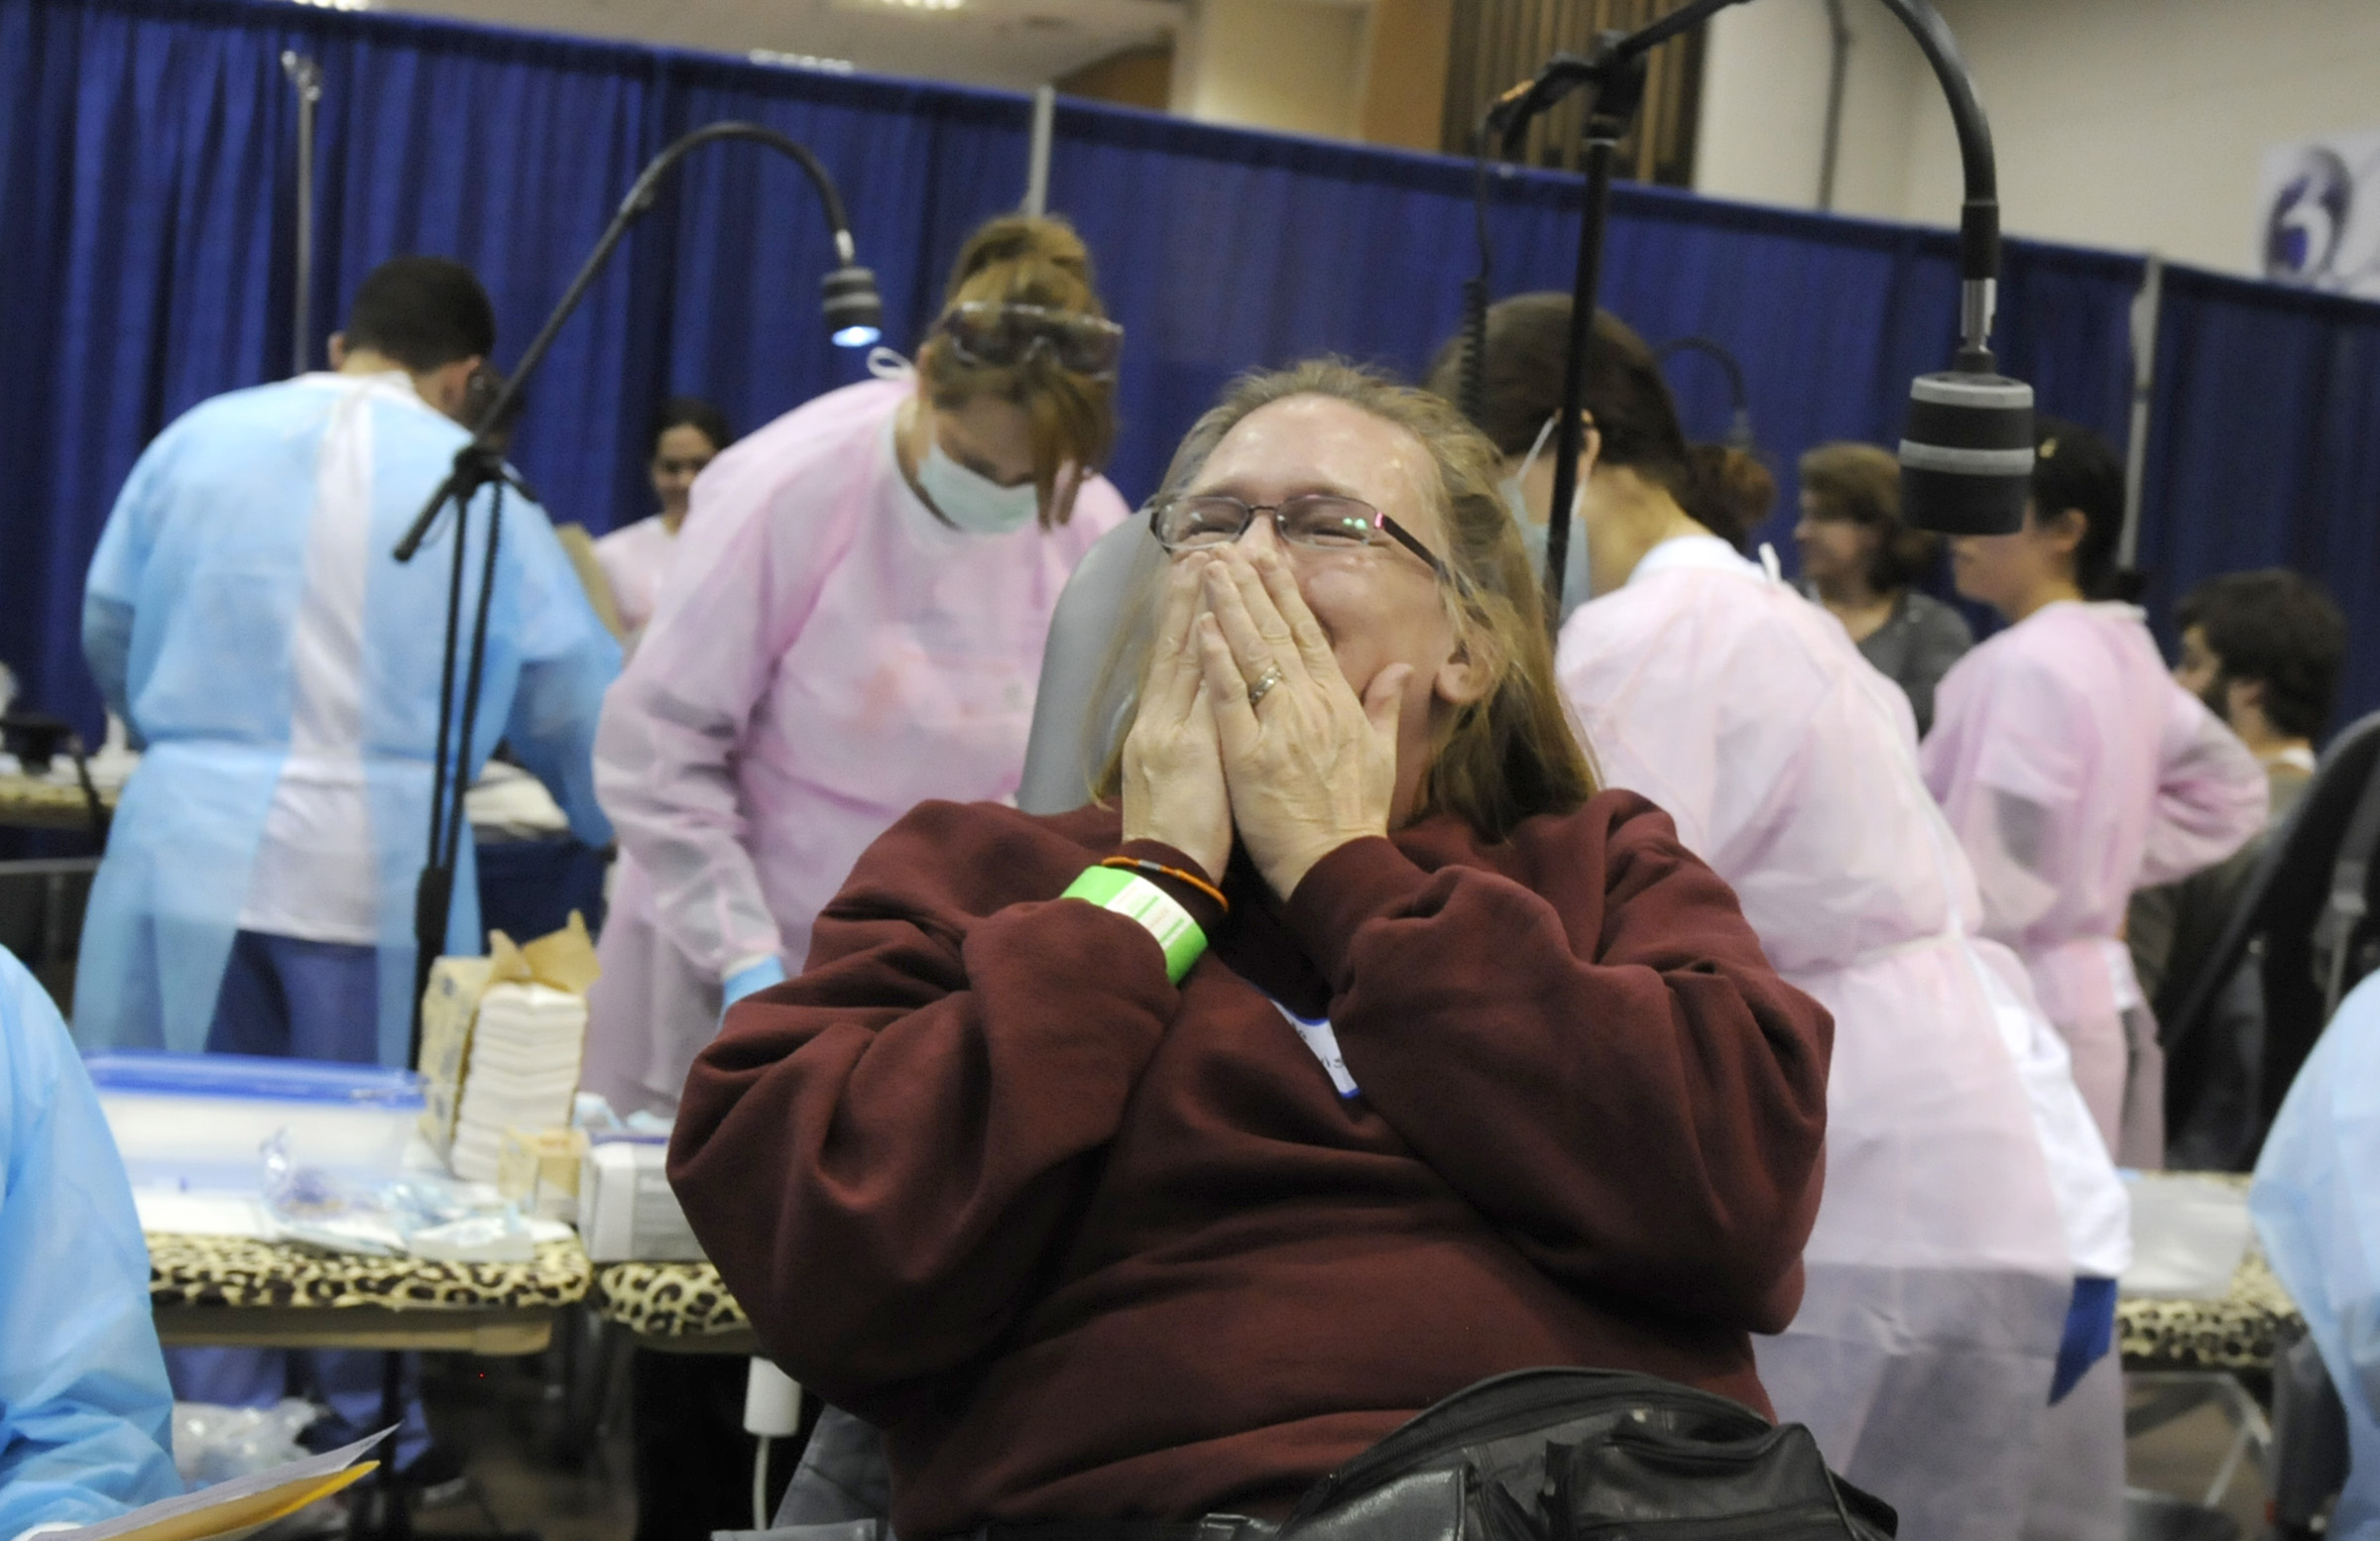 Brenda Davis, of Plymouth, blows a kiss to staff after getting a tooth extracted. She and hundreds of others were in line early Friday seeking free dental care staffed by volunteer dentists and assistants in a makeshift clinic. The CT MOM Free Dental Clinic at the XL Center in Hartford offered a full range of dental services on a first come first served basis starting at 6 A.M. Friday. More than 700 walked through the doors four hours later. The clinic continues Saturday.